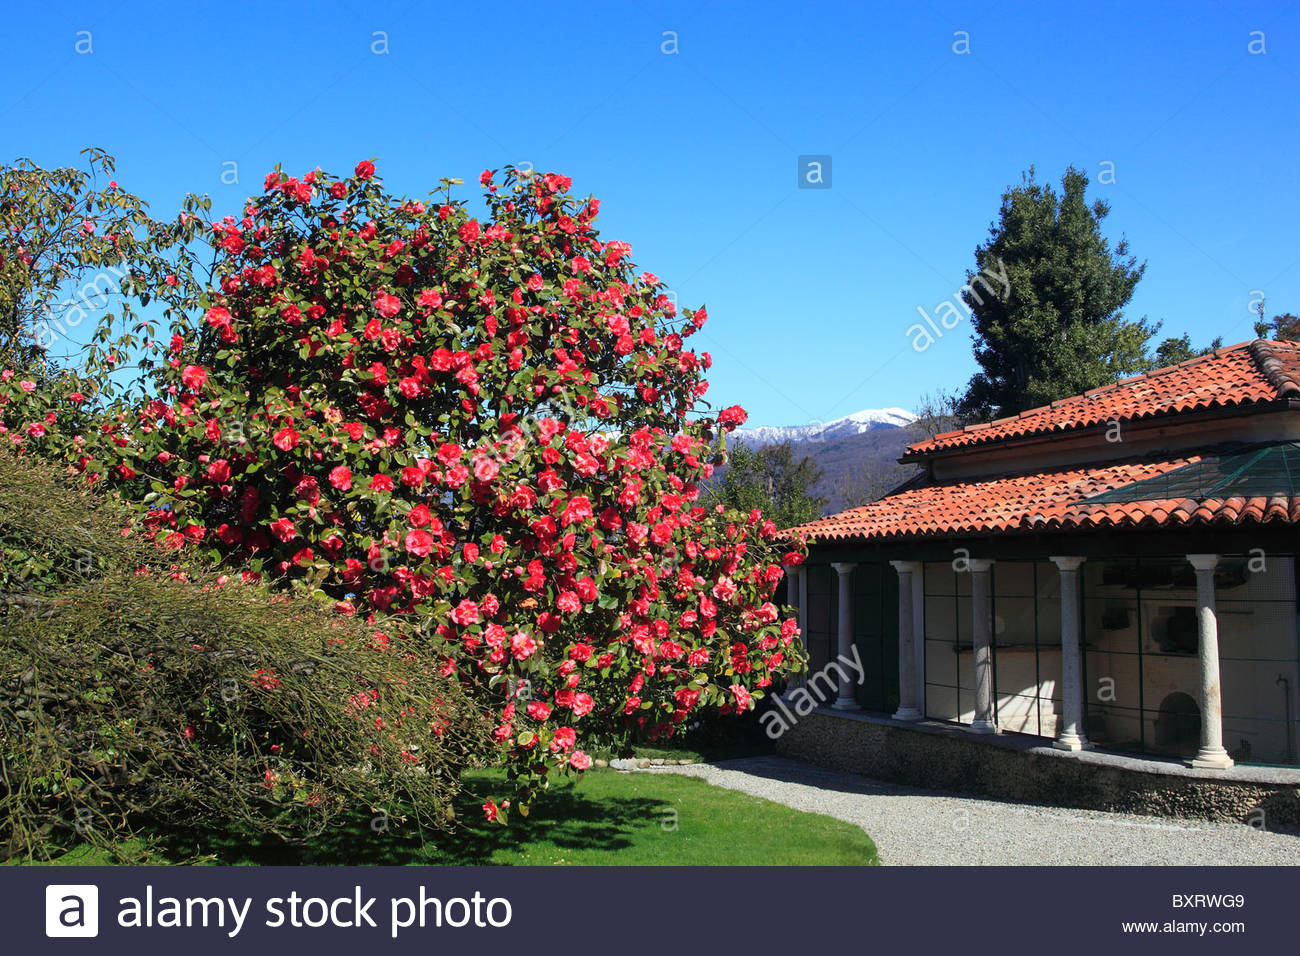 Isola Madre Borromean Islands, Garden with Camellia japonica, Isola Madre, Borromean Islands ...